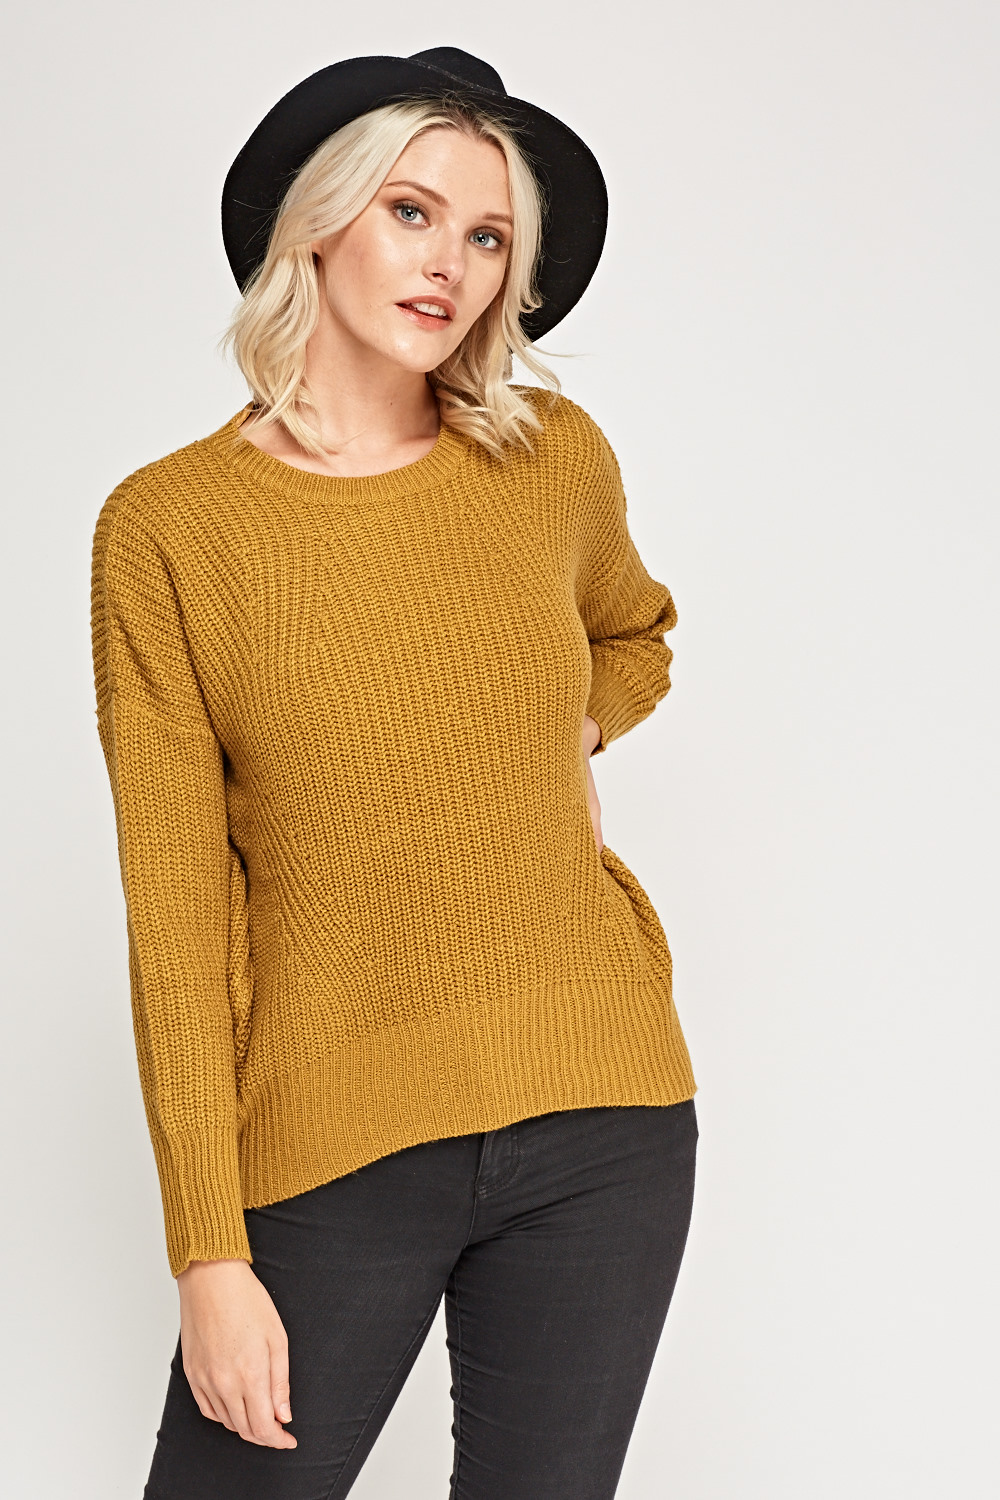 Mustard Cable Knit Jumper - Just £5